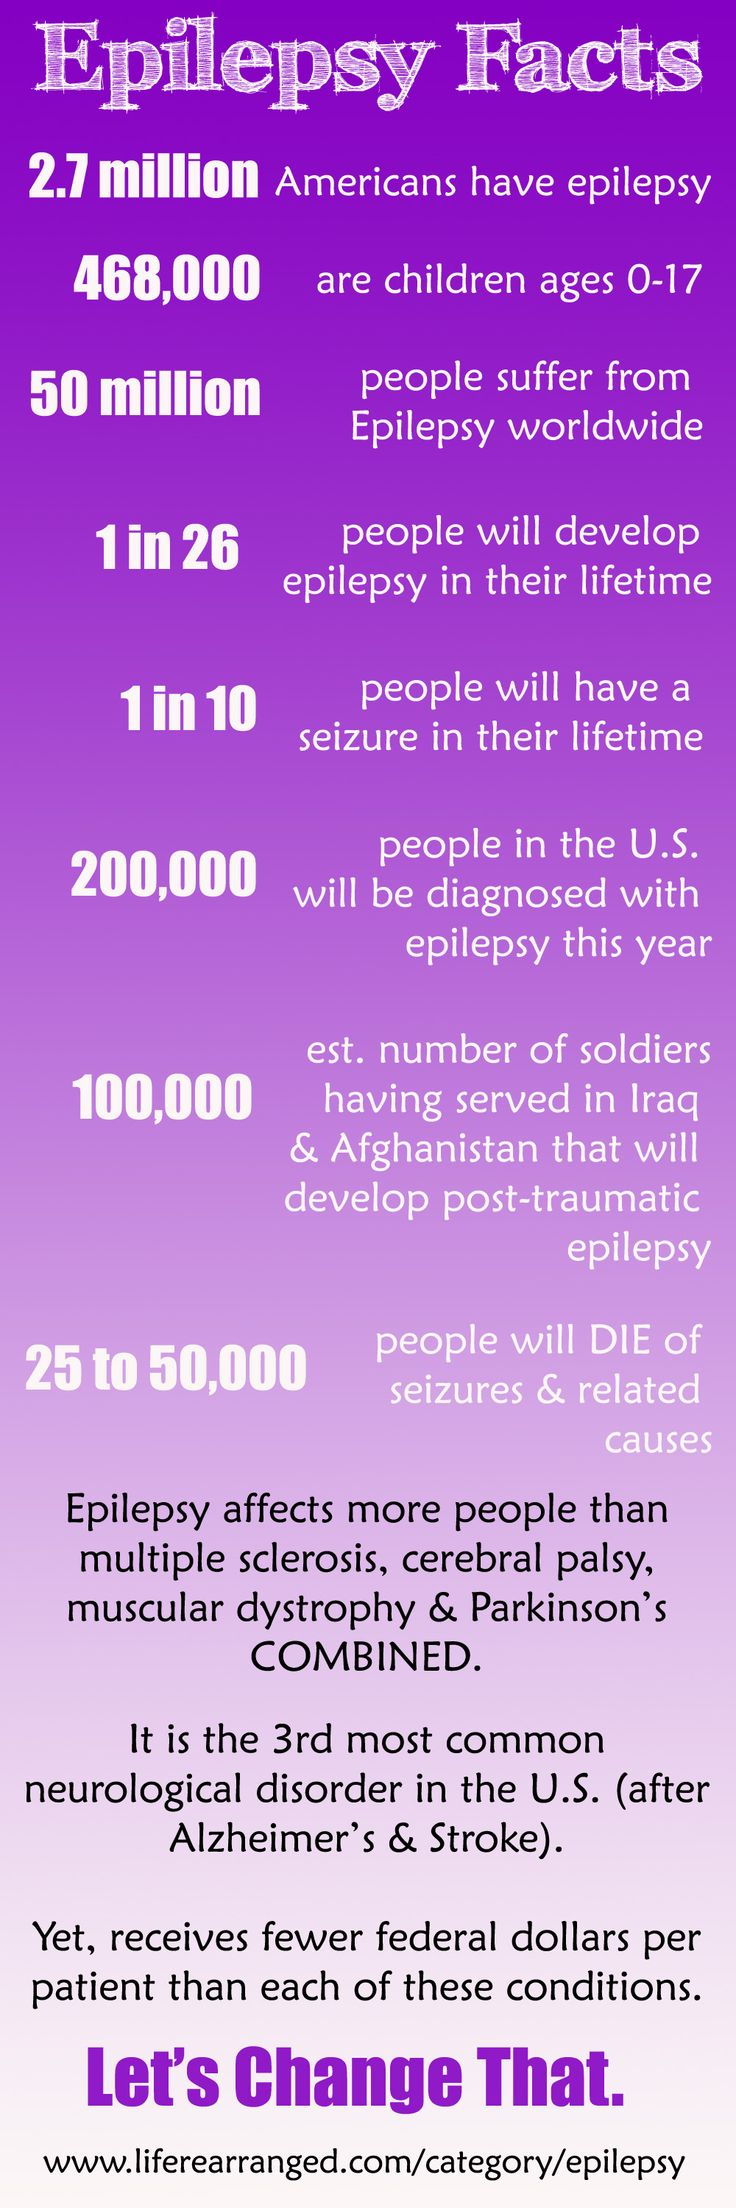 epilepsy facts and figures -- part of a powerful series on epilepsy at Life Rearranged #Epilepsy